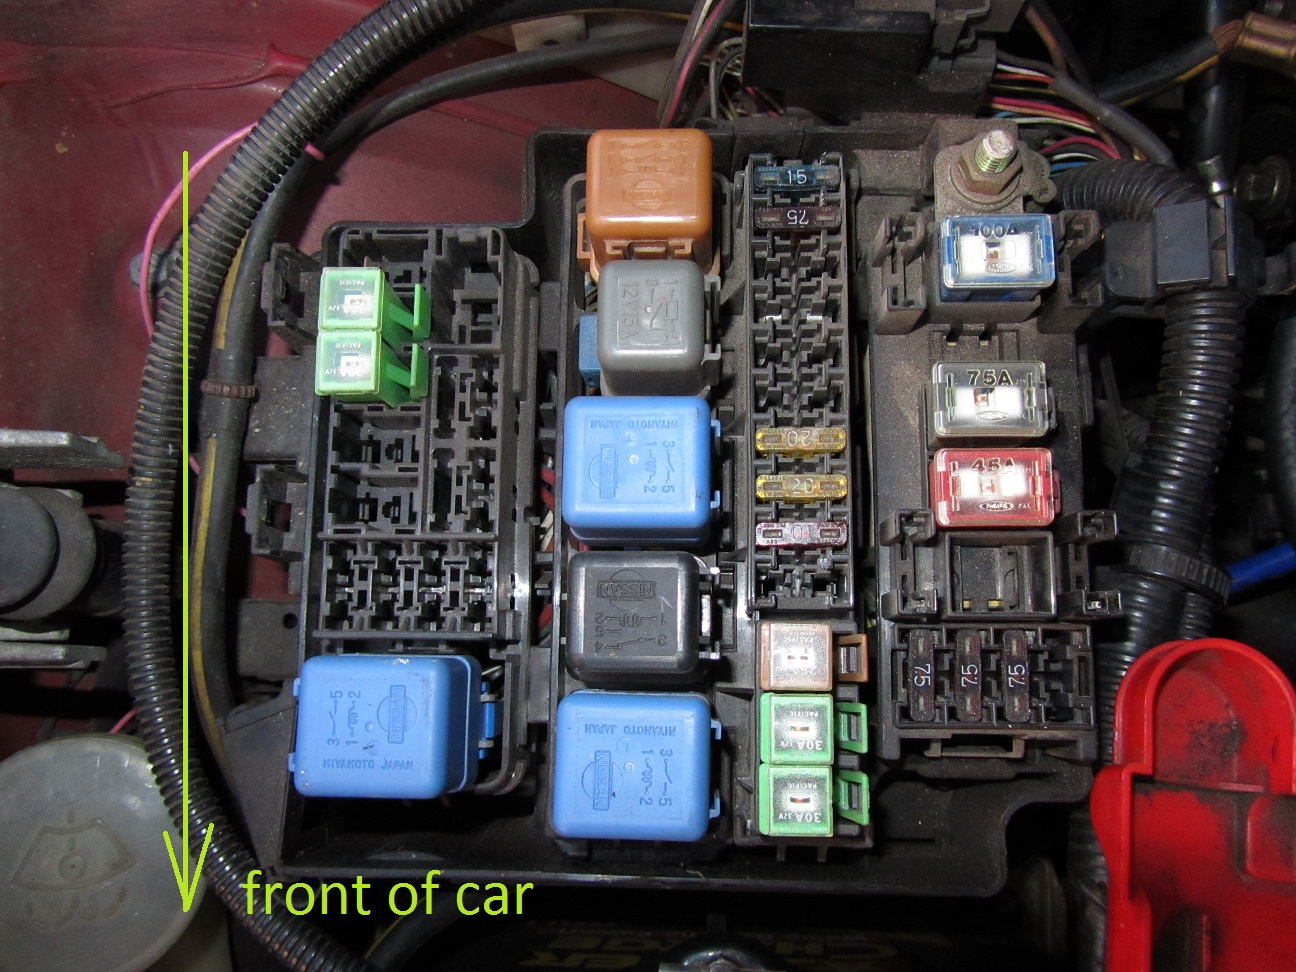 s14 fuse box wiring diagram structure Nissan Sentra Fuse Box Layout